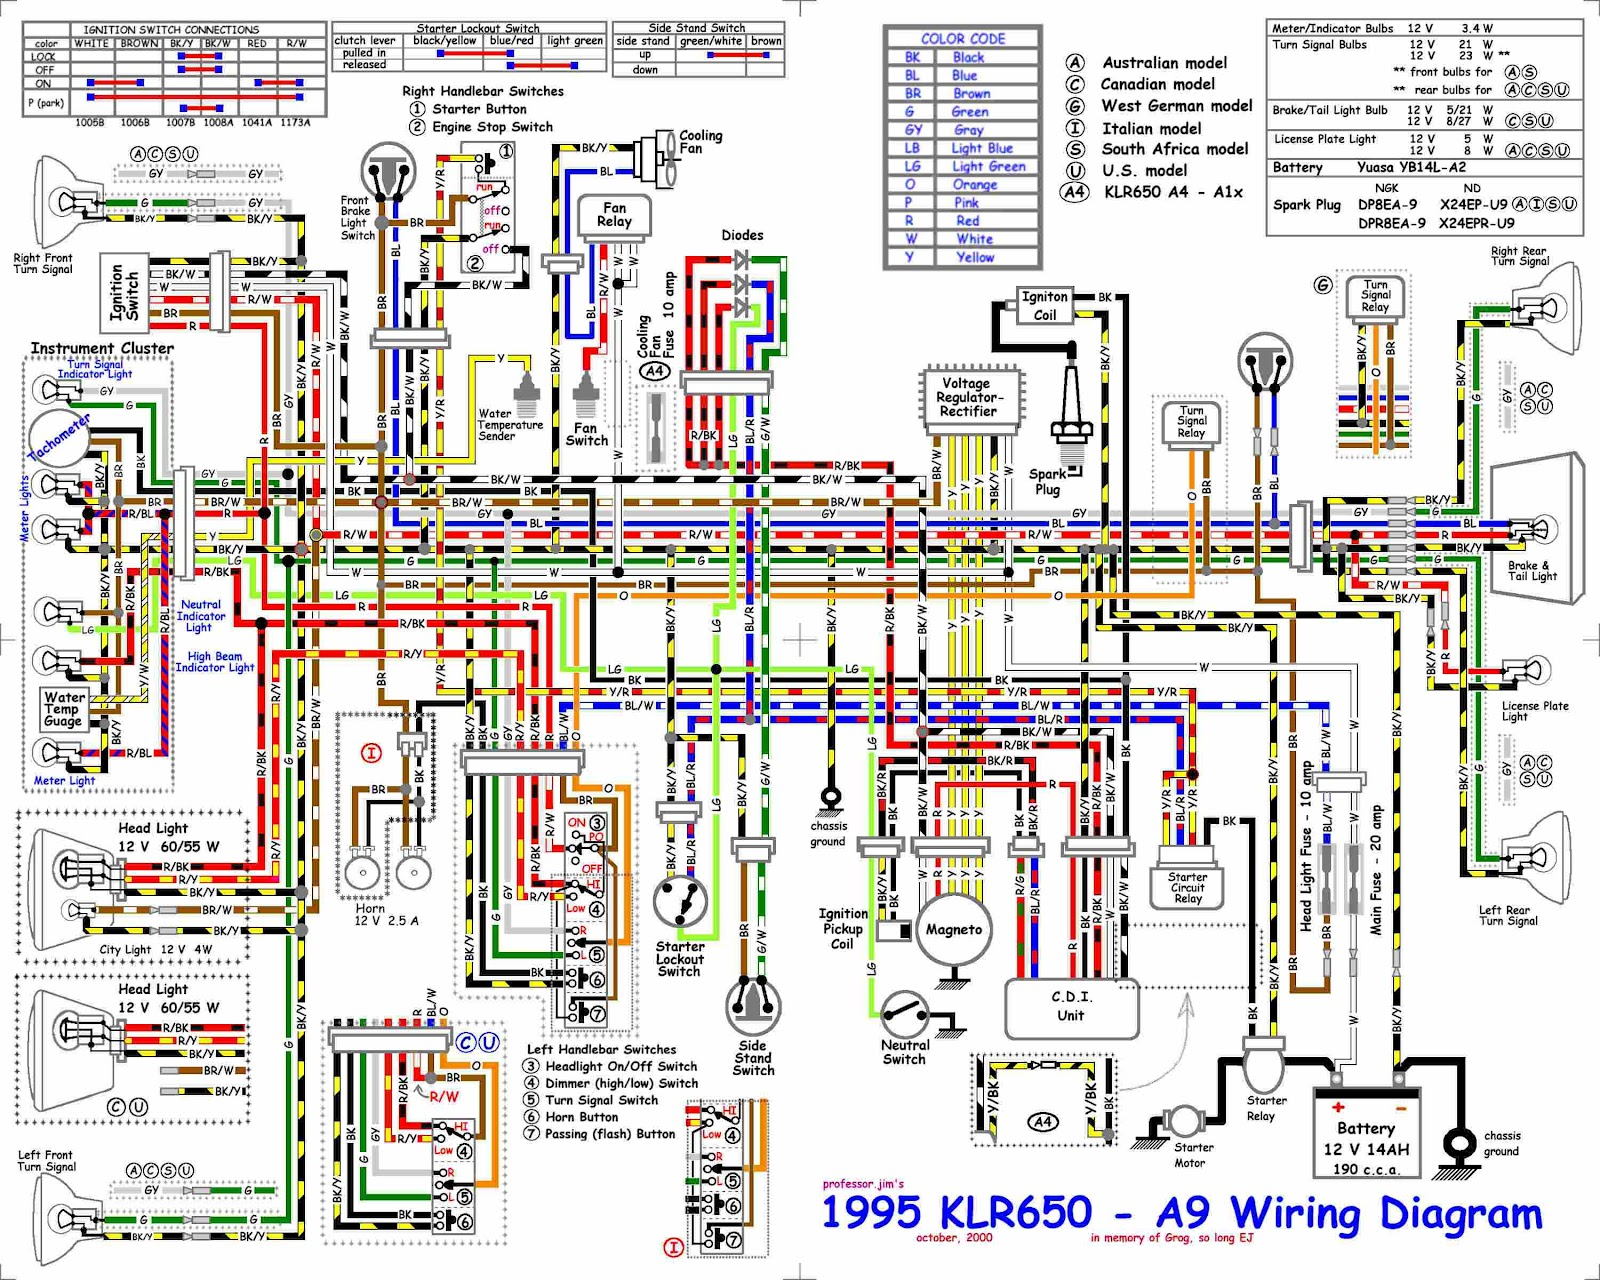 Kawasaki Motorcycle Wire Color Codes G4tr Wiring Diagram Www Topsimages Com